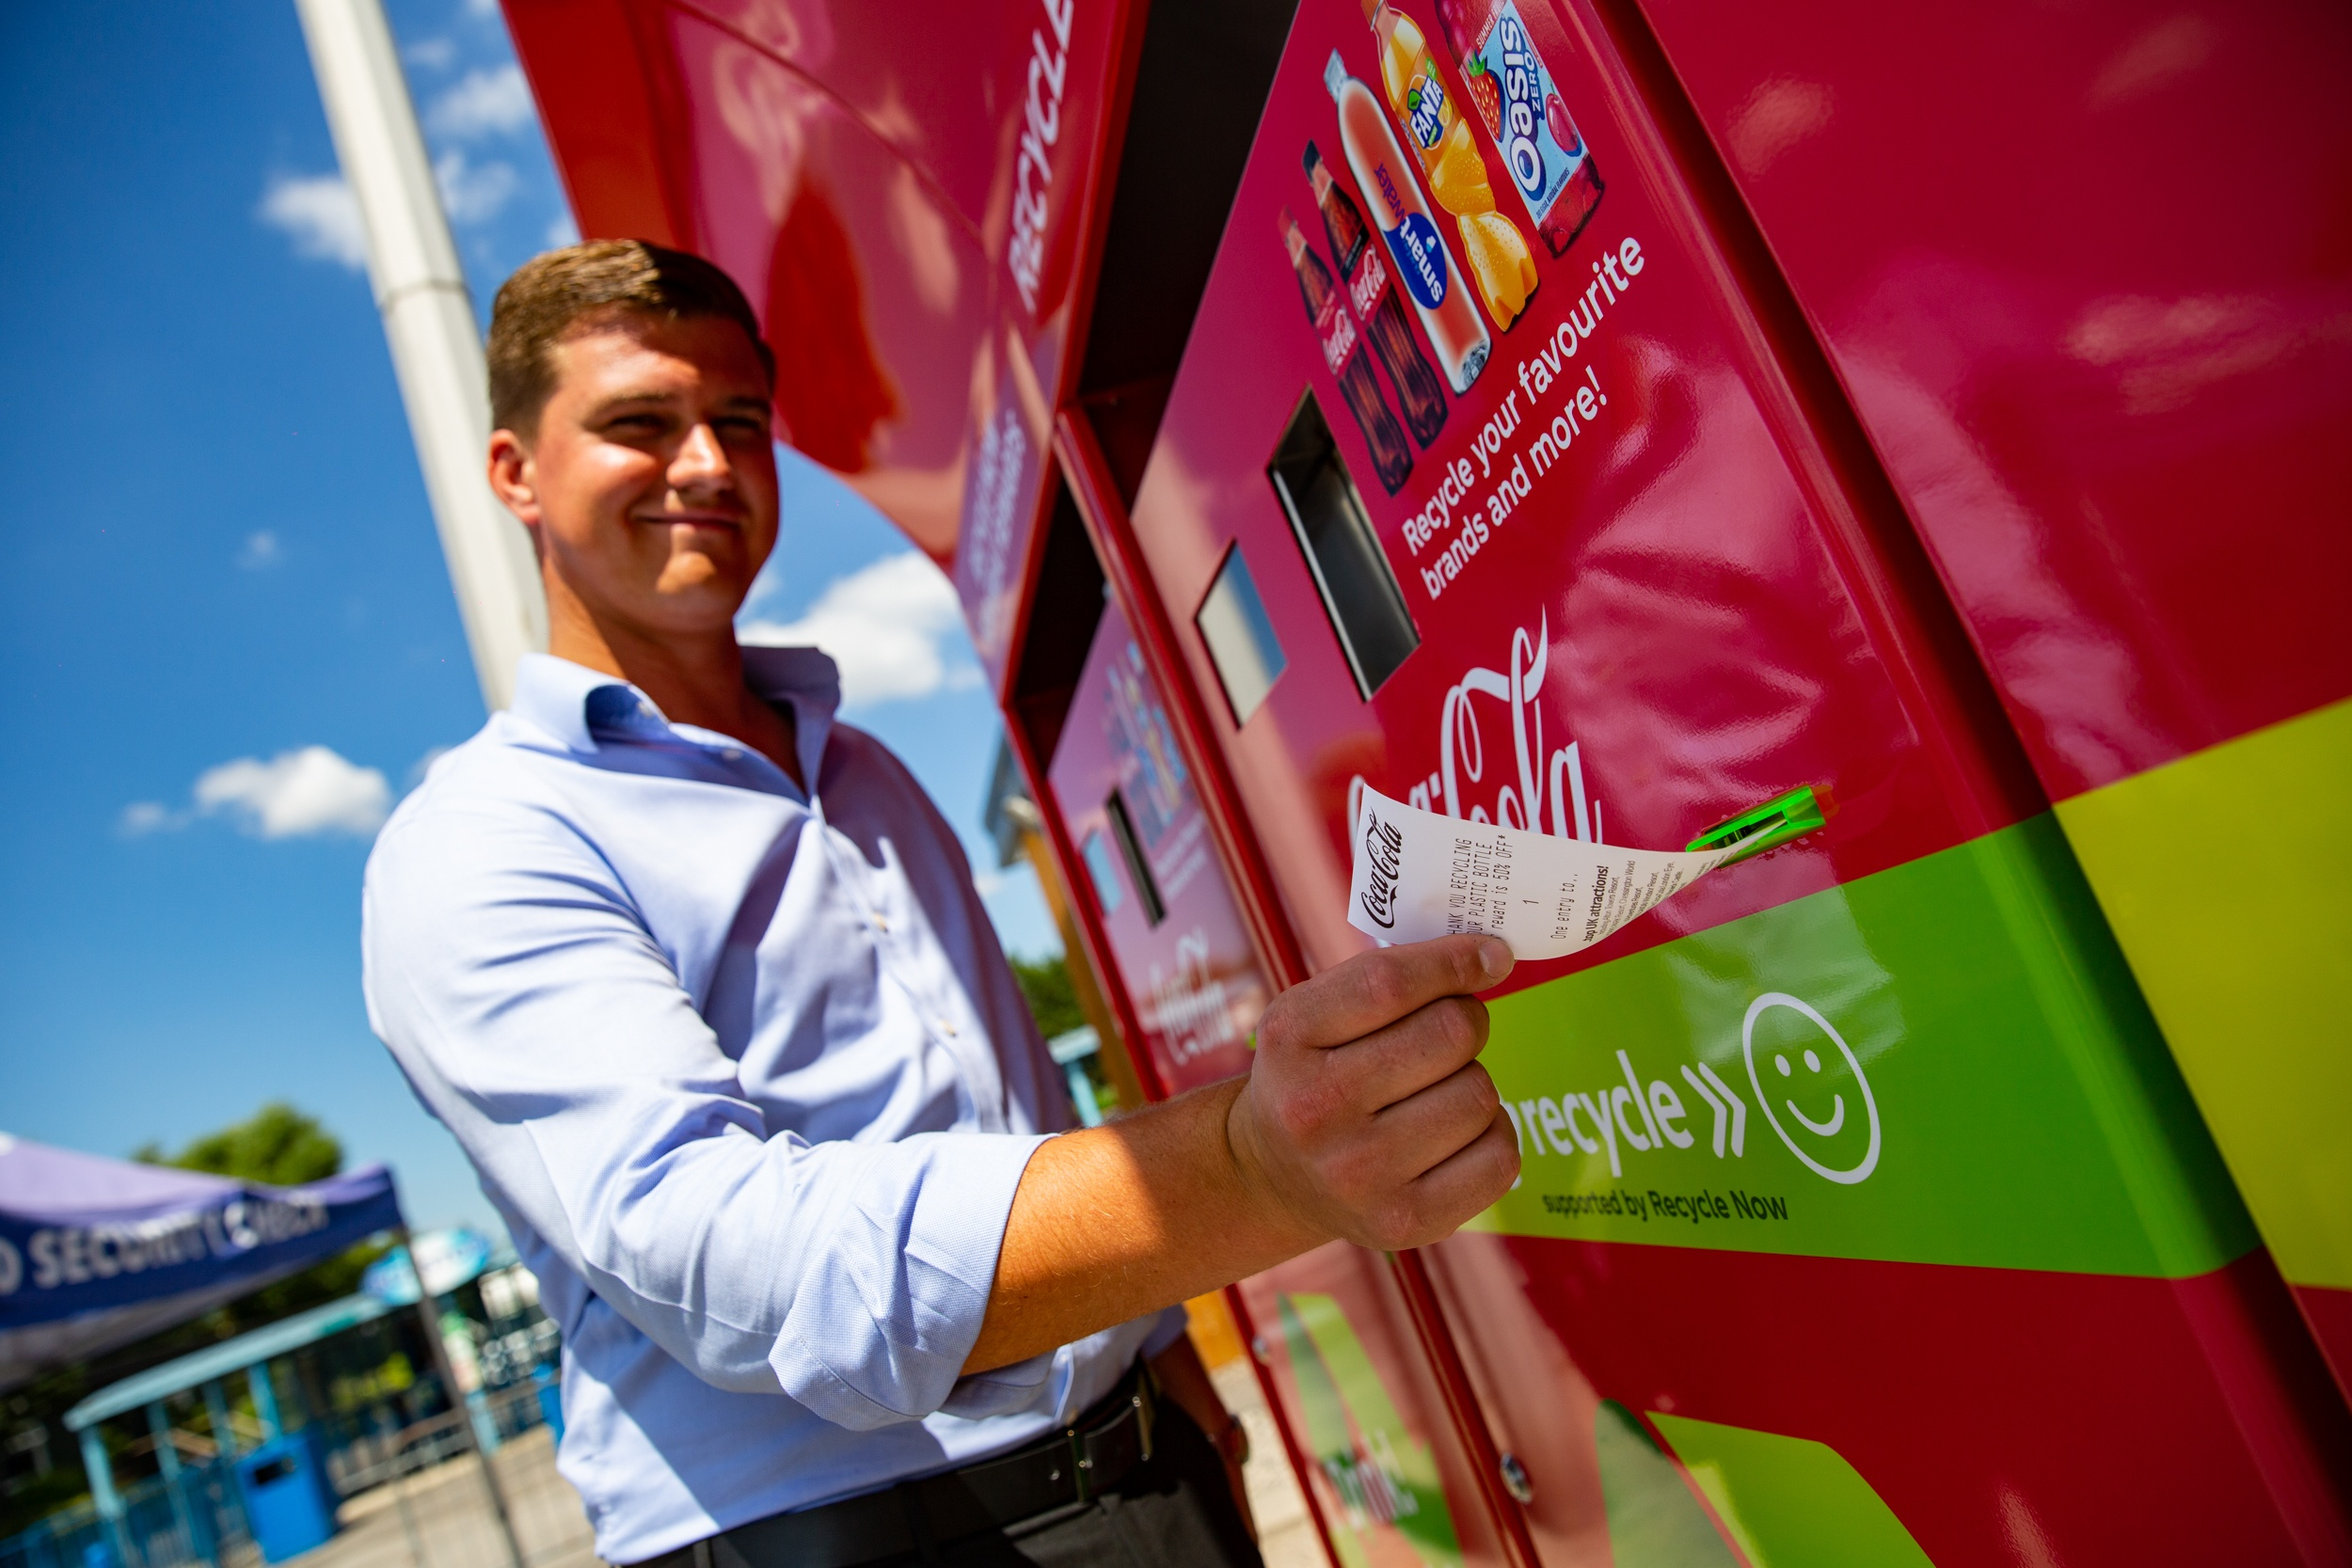 Coca-Cola GB launches reverse vending machine trial with Merlin Entertainments (3)